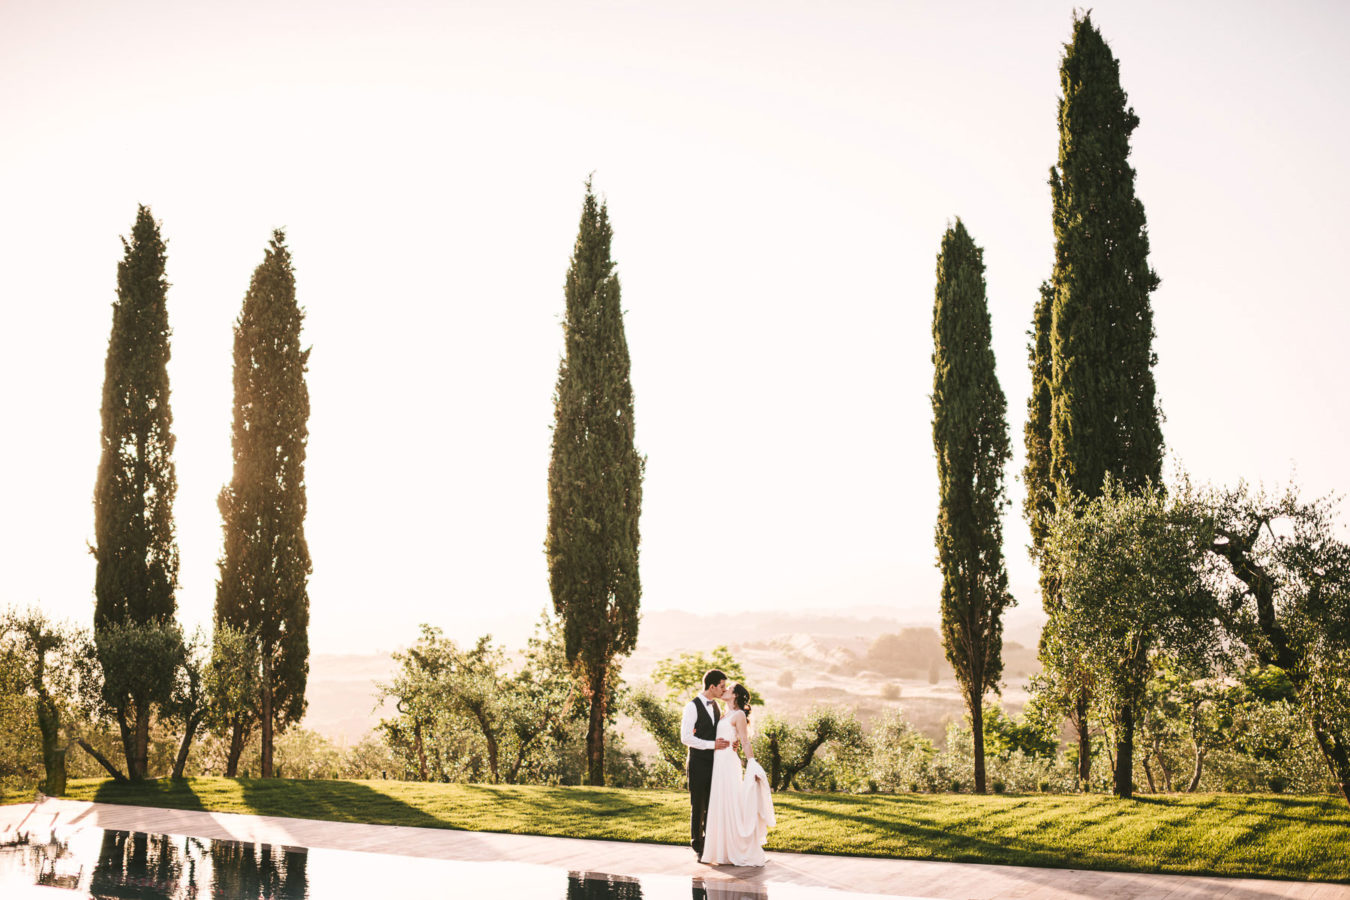 For some couples it's all about the party, for others it's all about the feelings. Juliana and Olivier belong to this second group and opted for a traditional wedding where their emotions and those of their guests played the biggest part